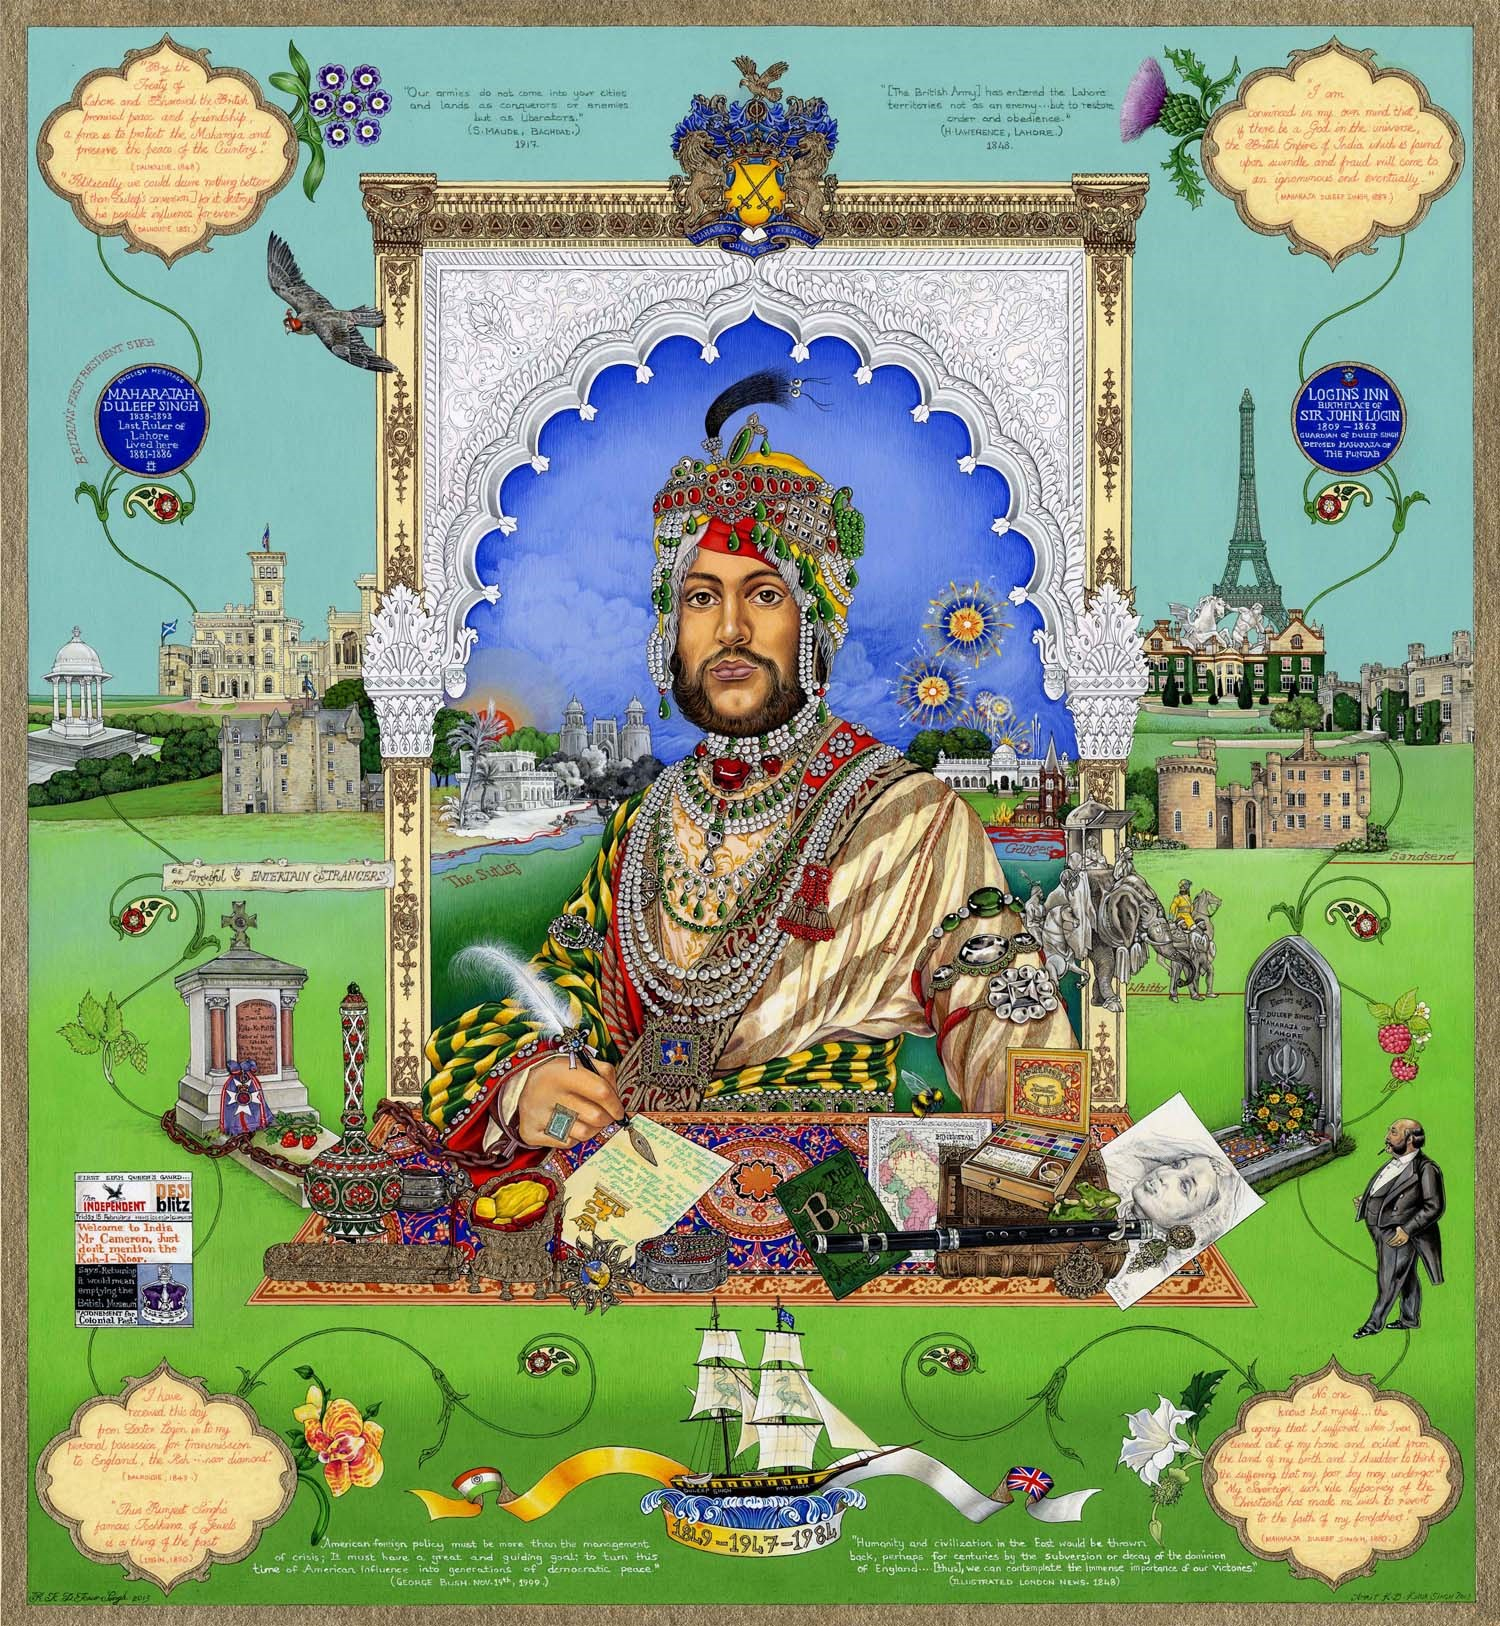 Casualty of War: A Portrait of Maharaja Duleep Singh © The Singh Twins.